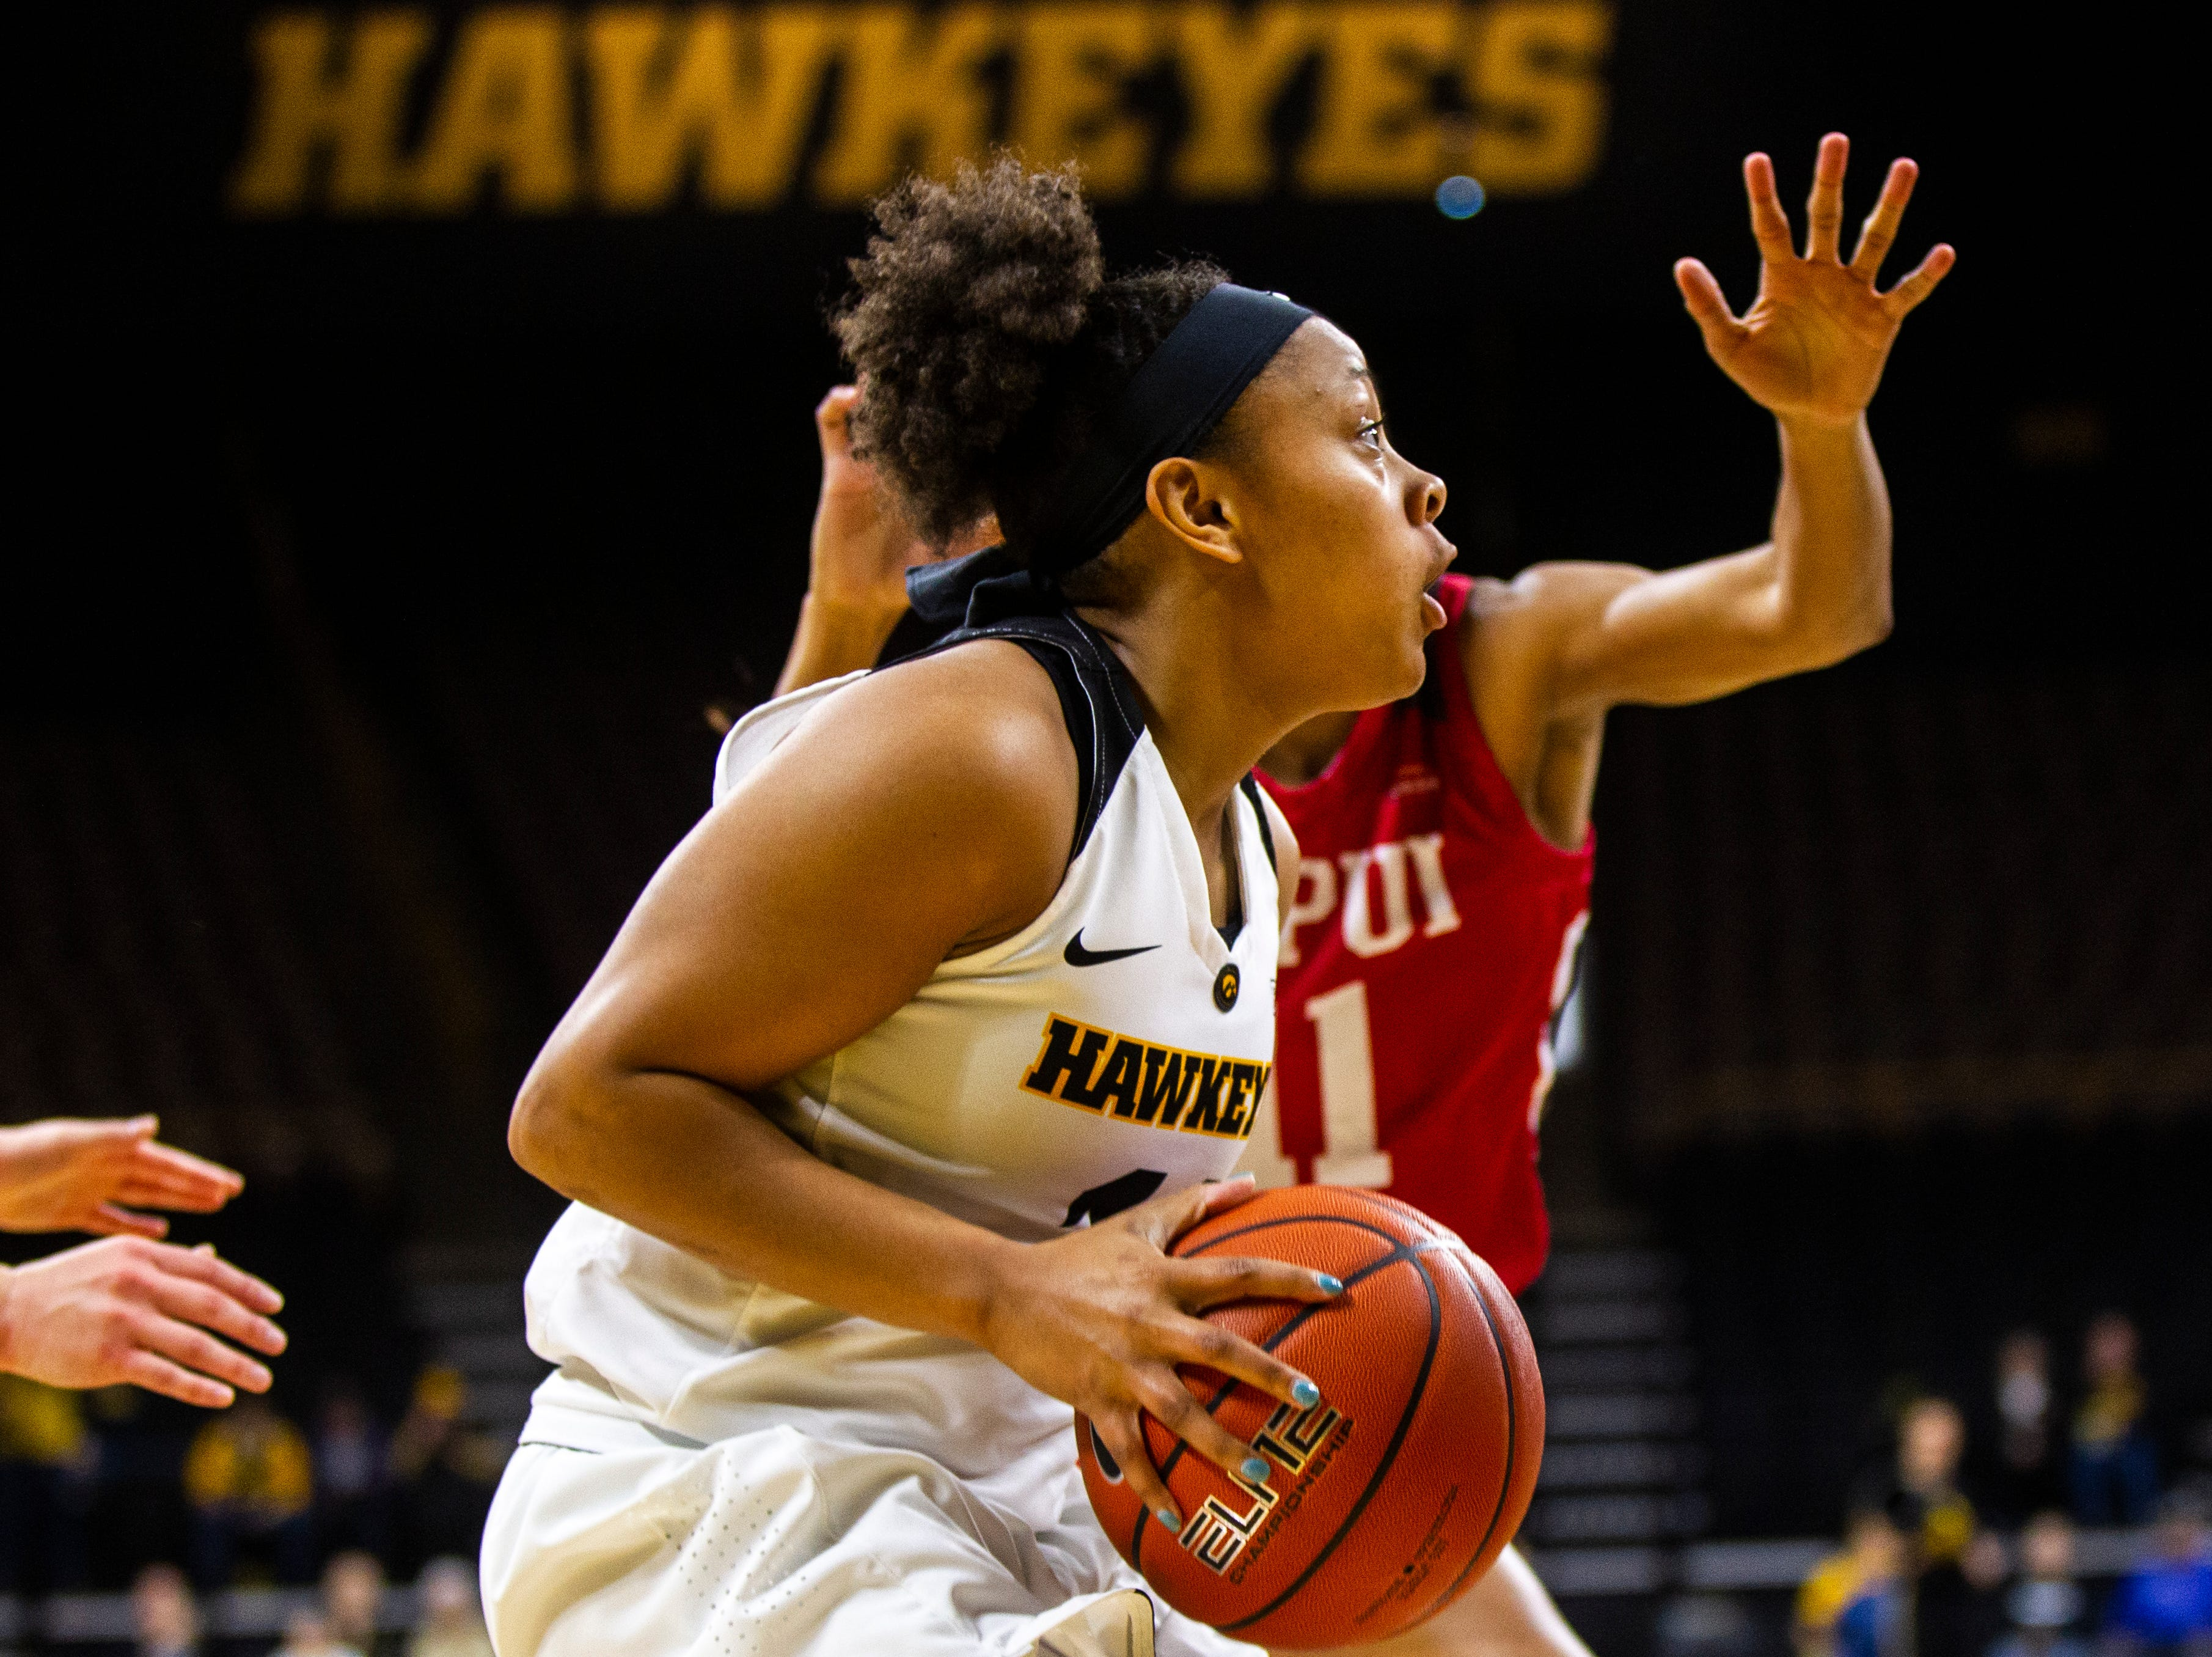 Iowa guard Tania Davis (11) drives to the hoop during a NCAA women's basketball game on Saturday, Dec. 8, 2018, at Carver-Hawkeye Arena in Iowa City.